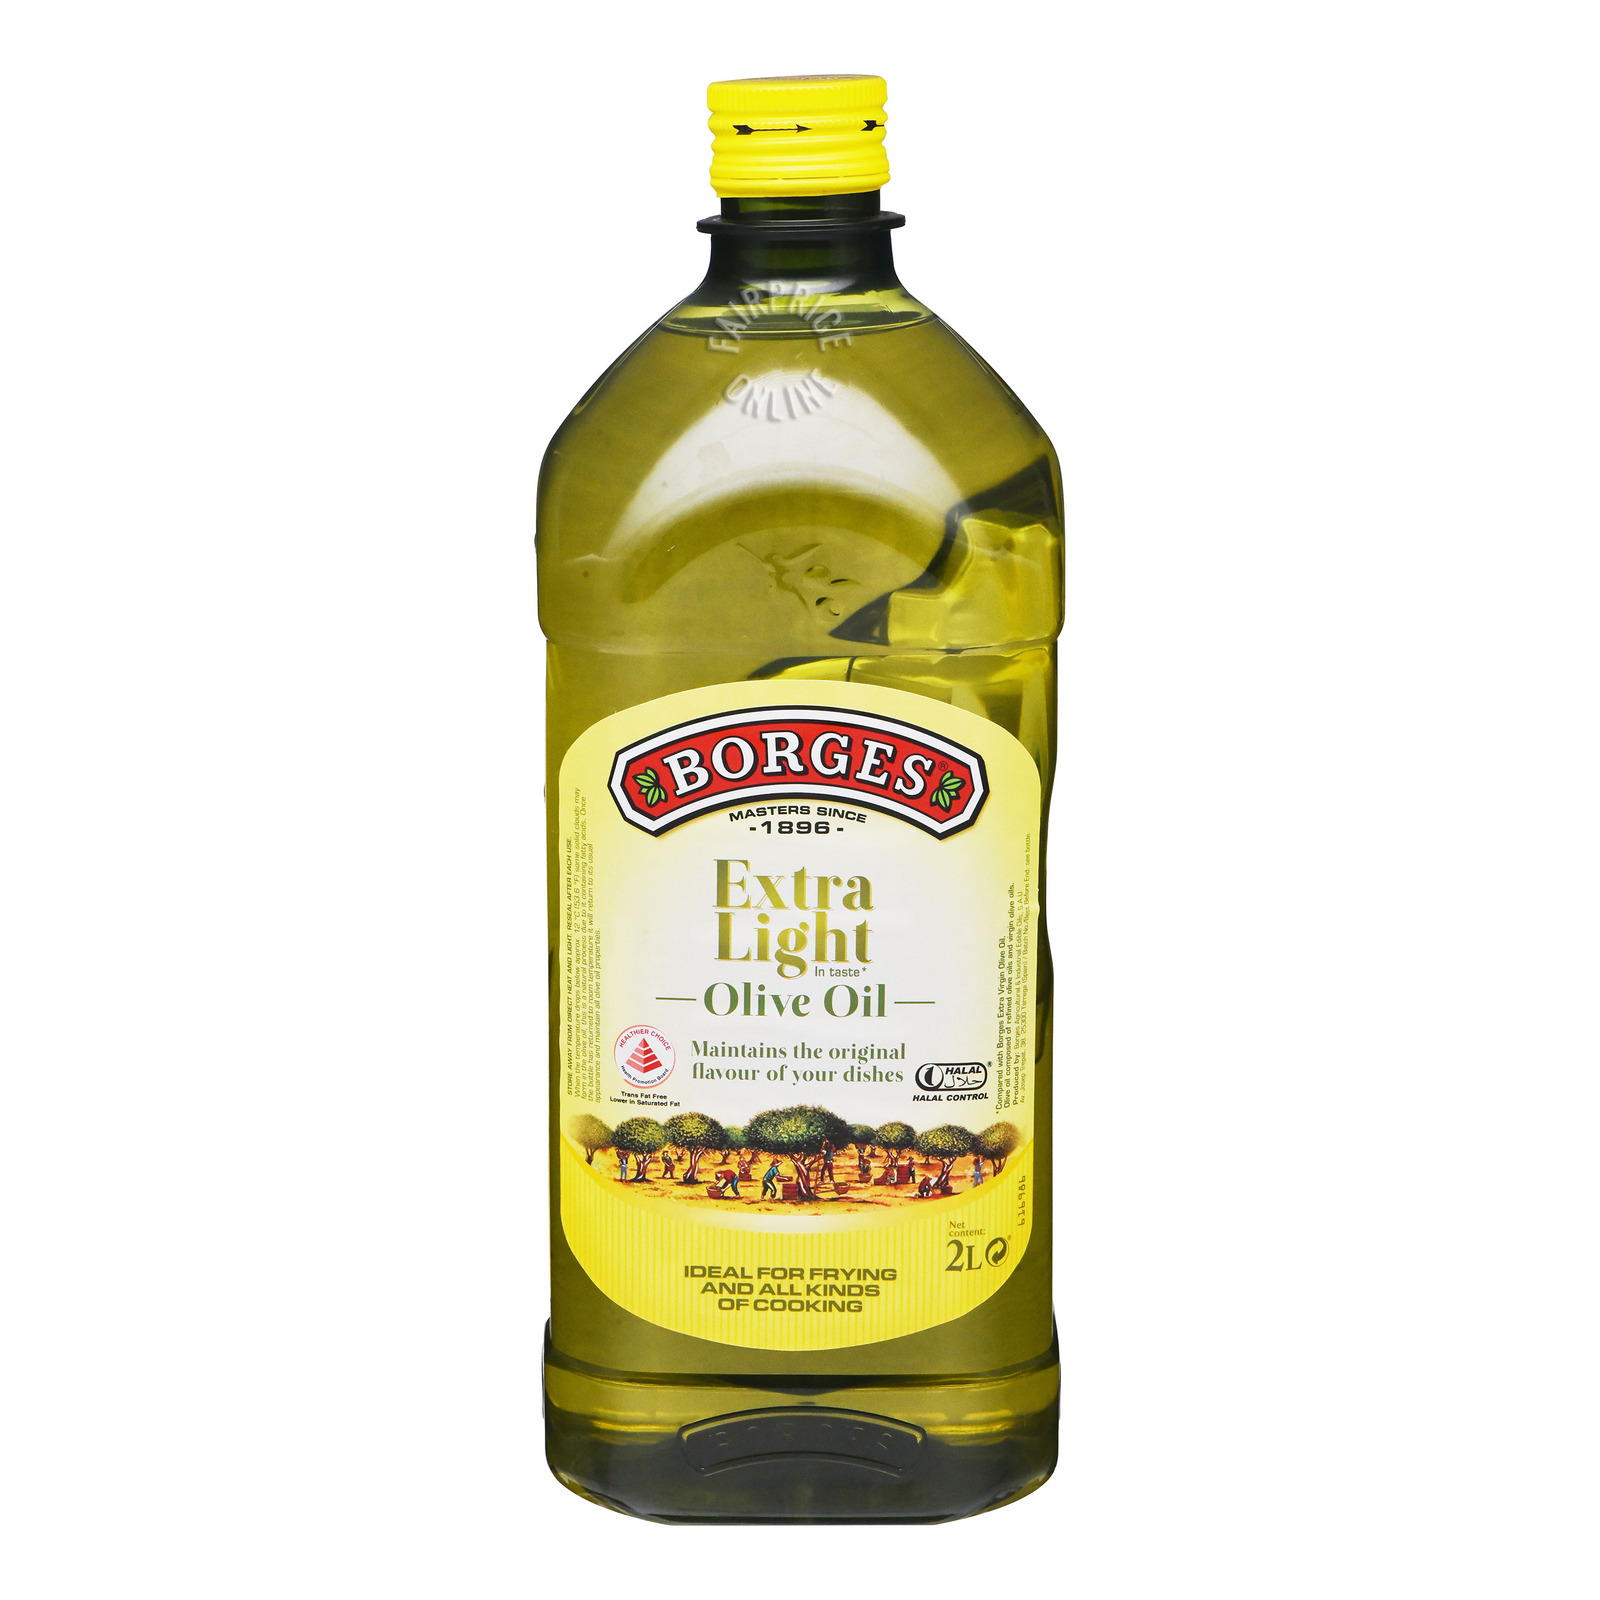 Heritage Farm Extra Light Olive Oil 2L